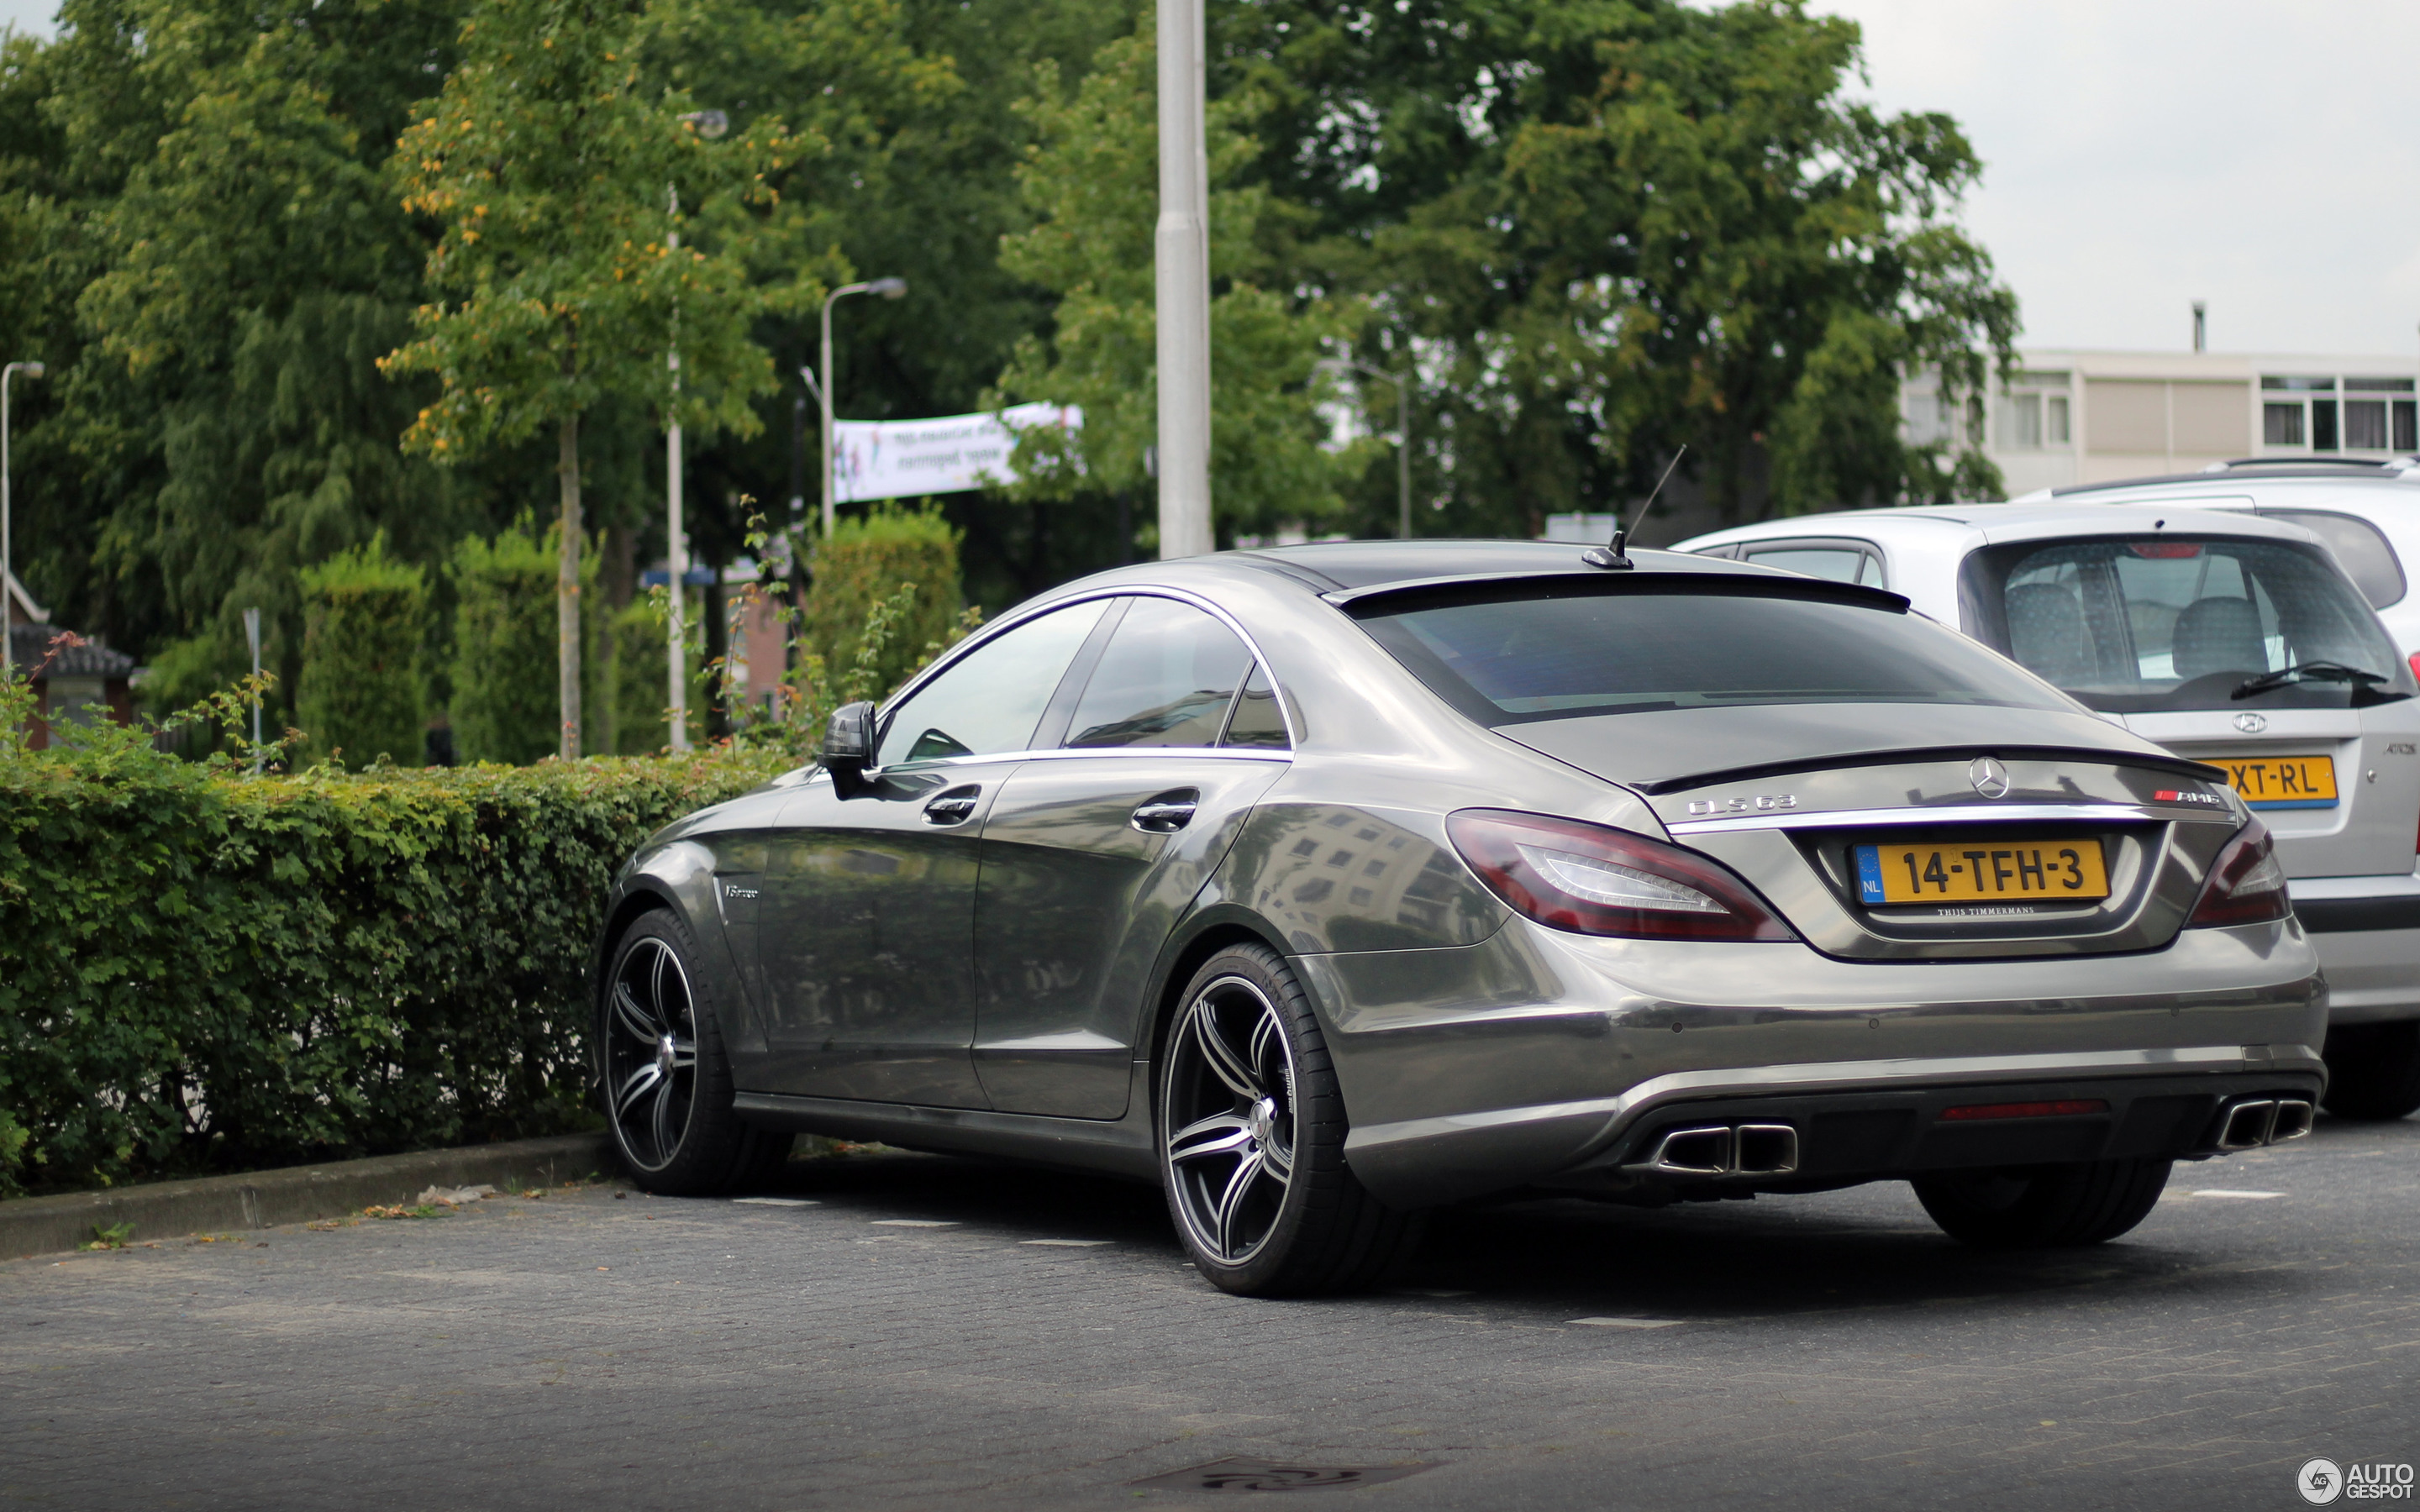 Mercedes Benz CLS 63 AMG C218 26 September 2017 Autogespot